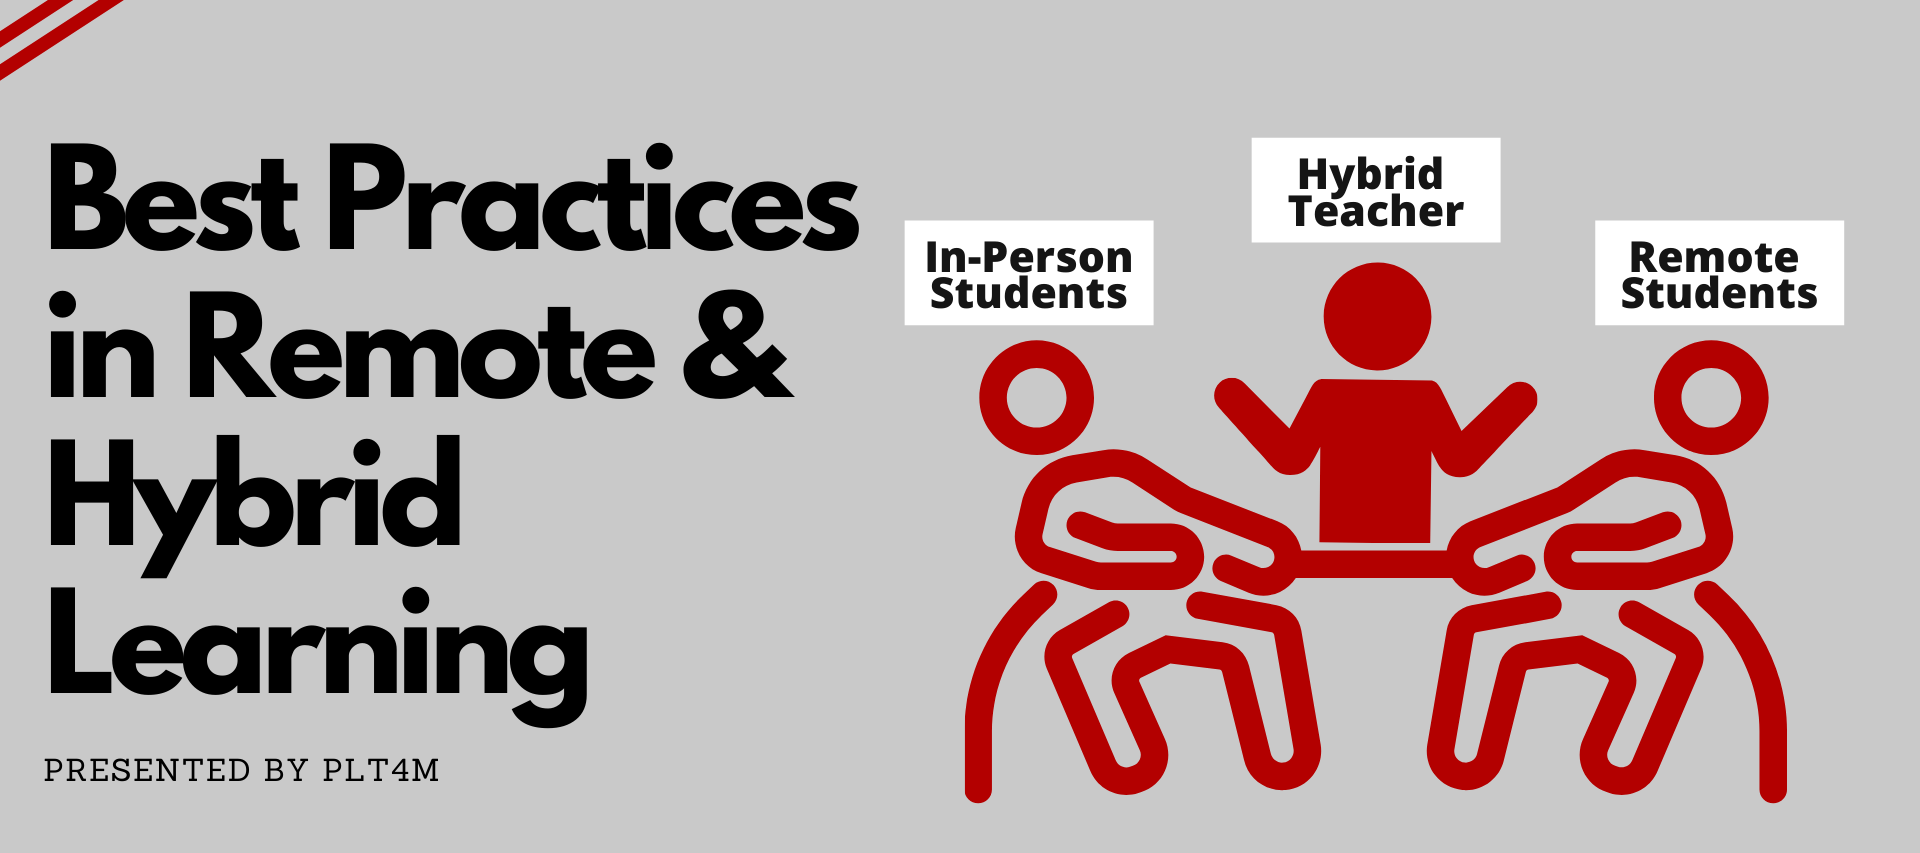 Best Practices in Remote & Hybrid Learning